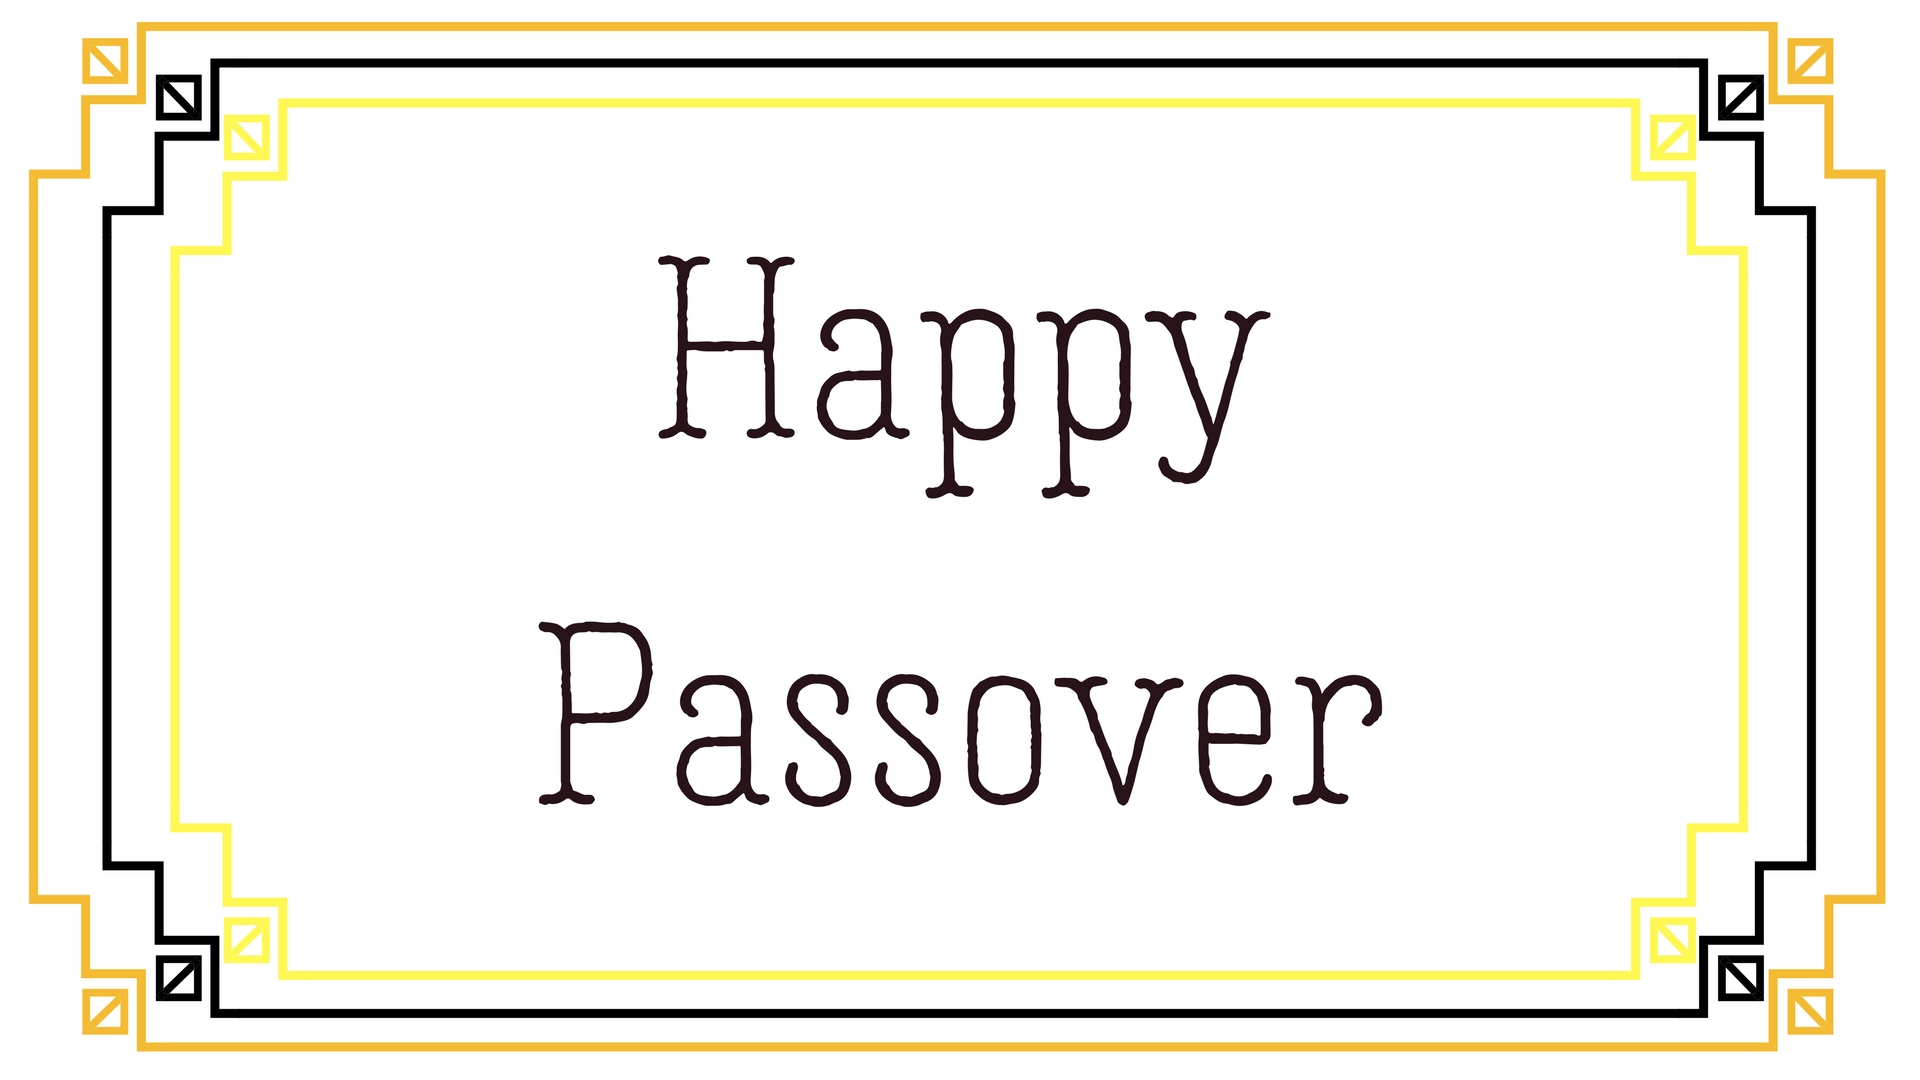 Happy Passover Rectangle Frame Greeting Card Postcard 7